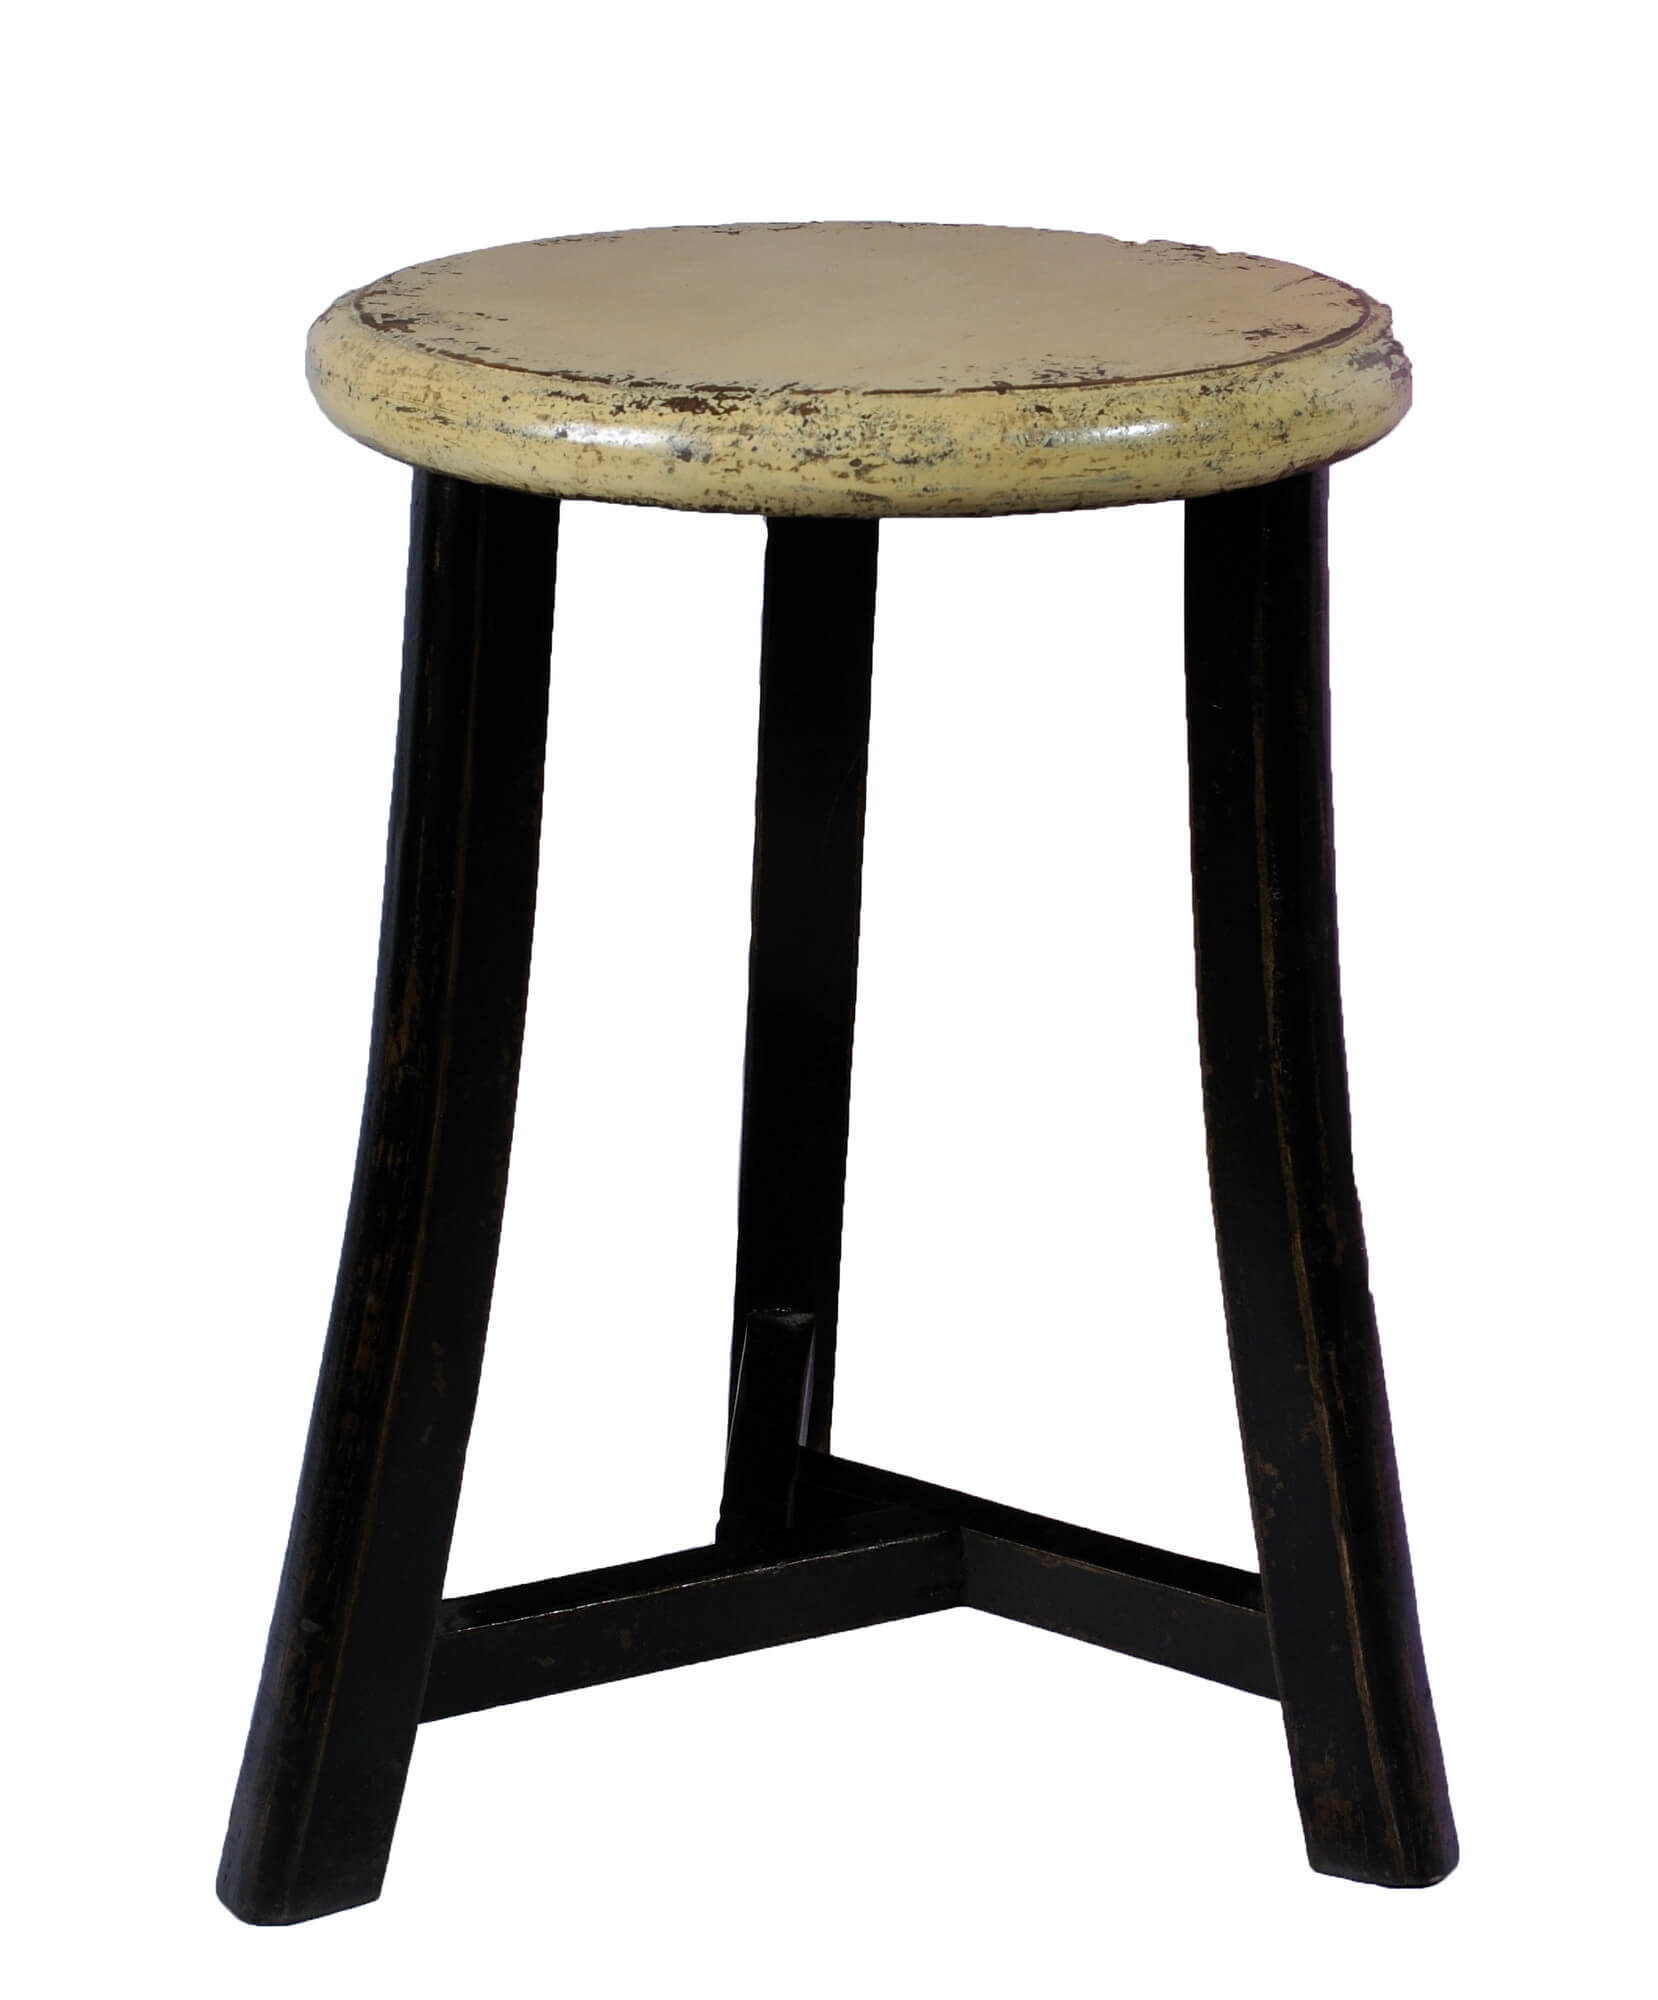 3-legged backless stool with round distressed seat.